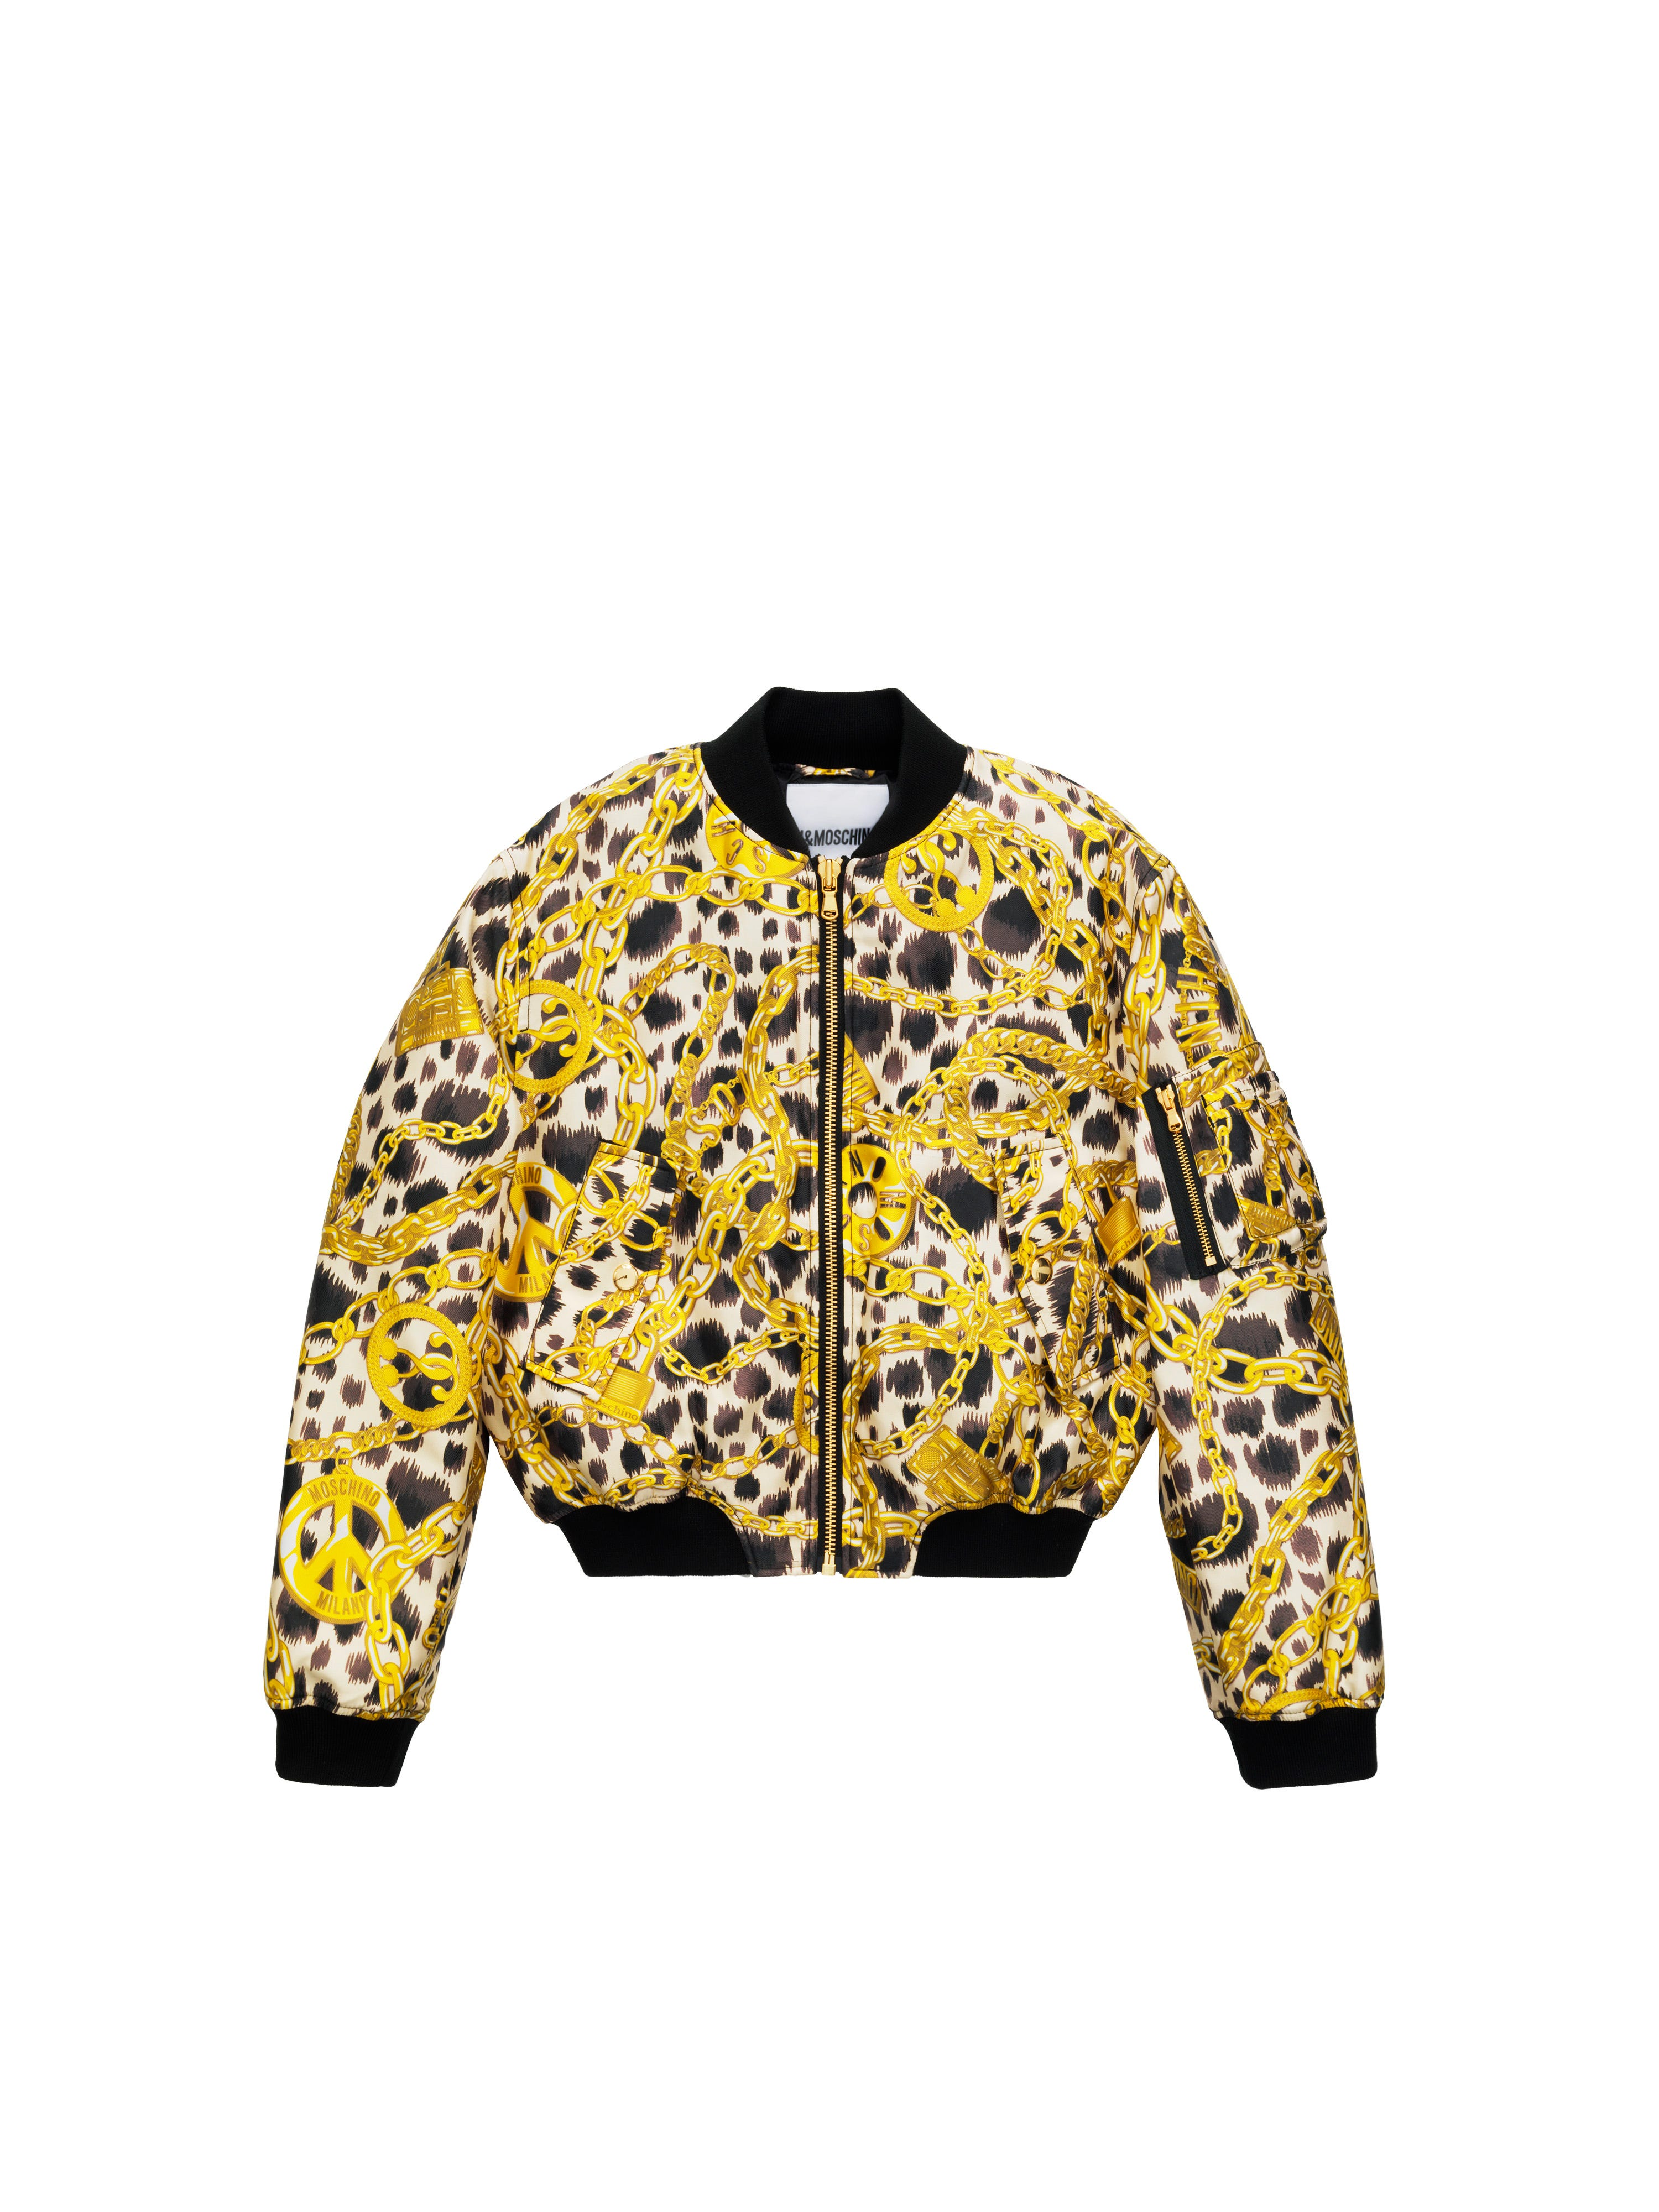 d165d9fe475 The HM And Moschino Collab Is Already Selling Out